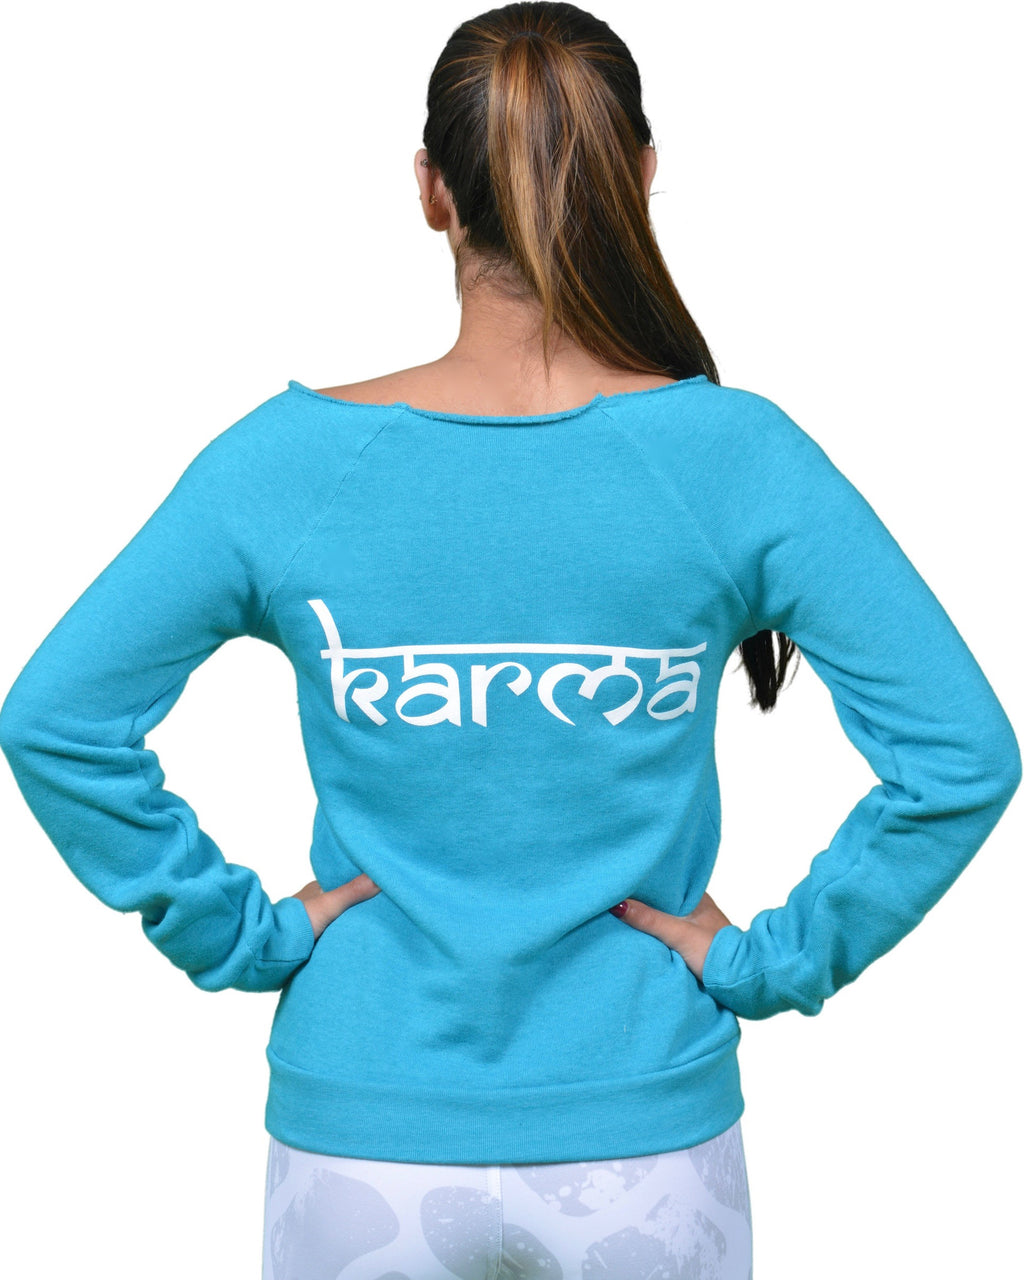 Karma Off The Shoulder Sweatshirt in Deep Turquoise - Final Sale!